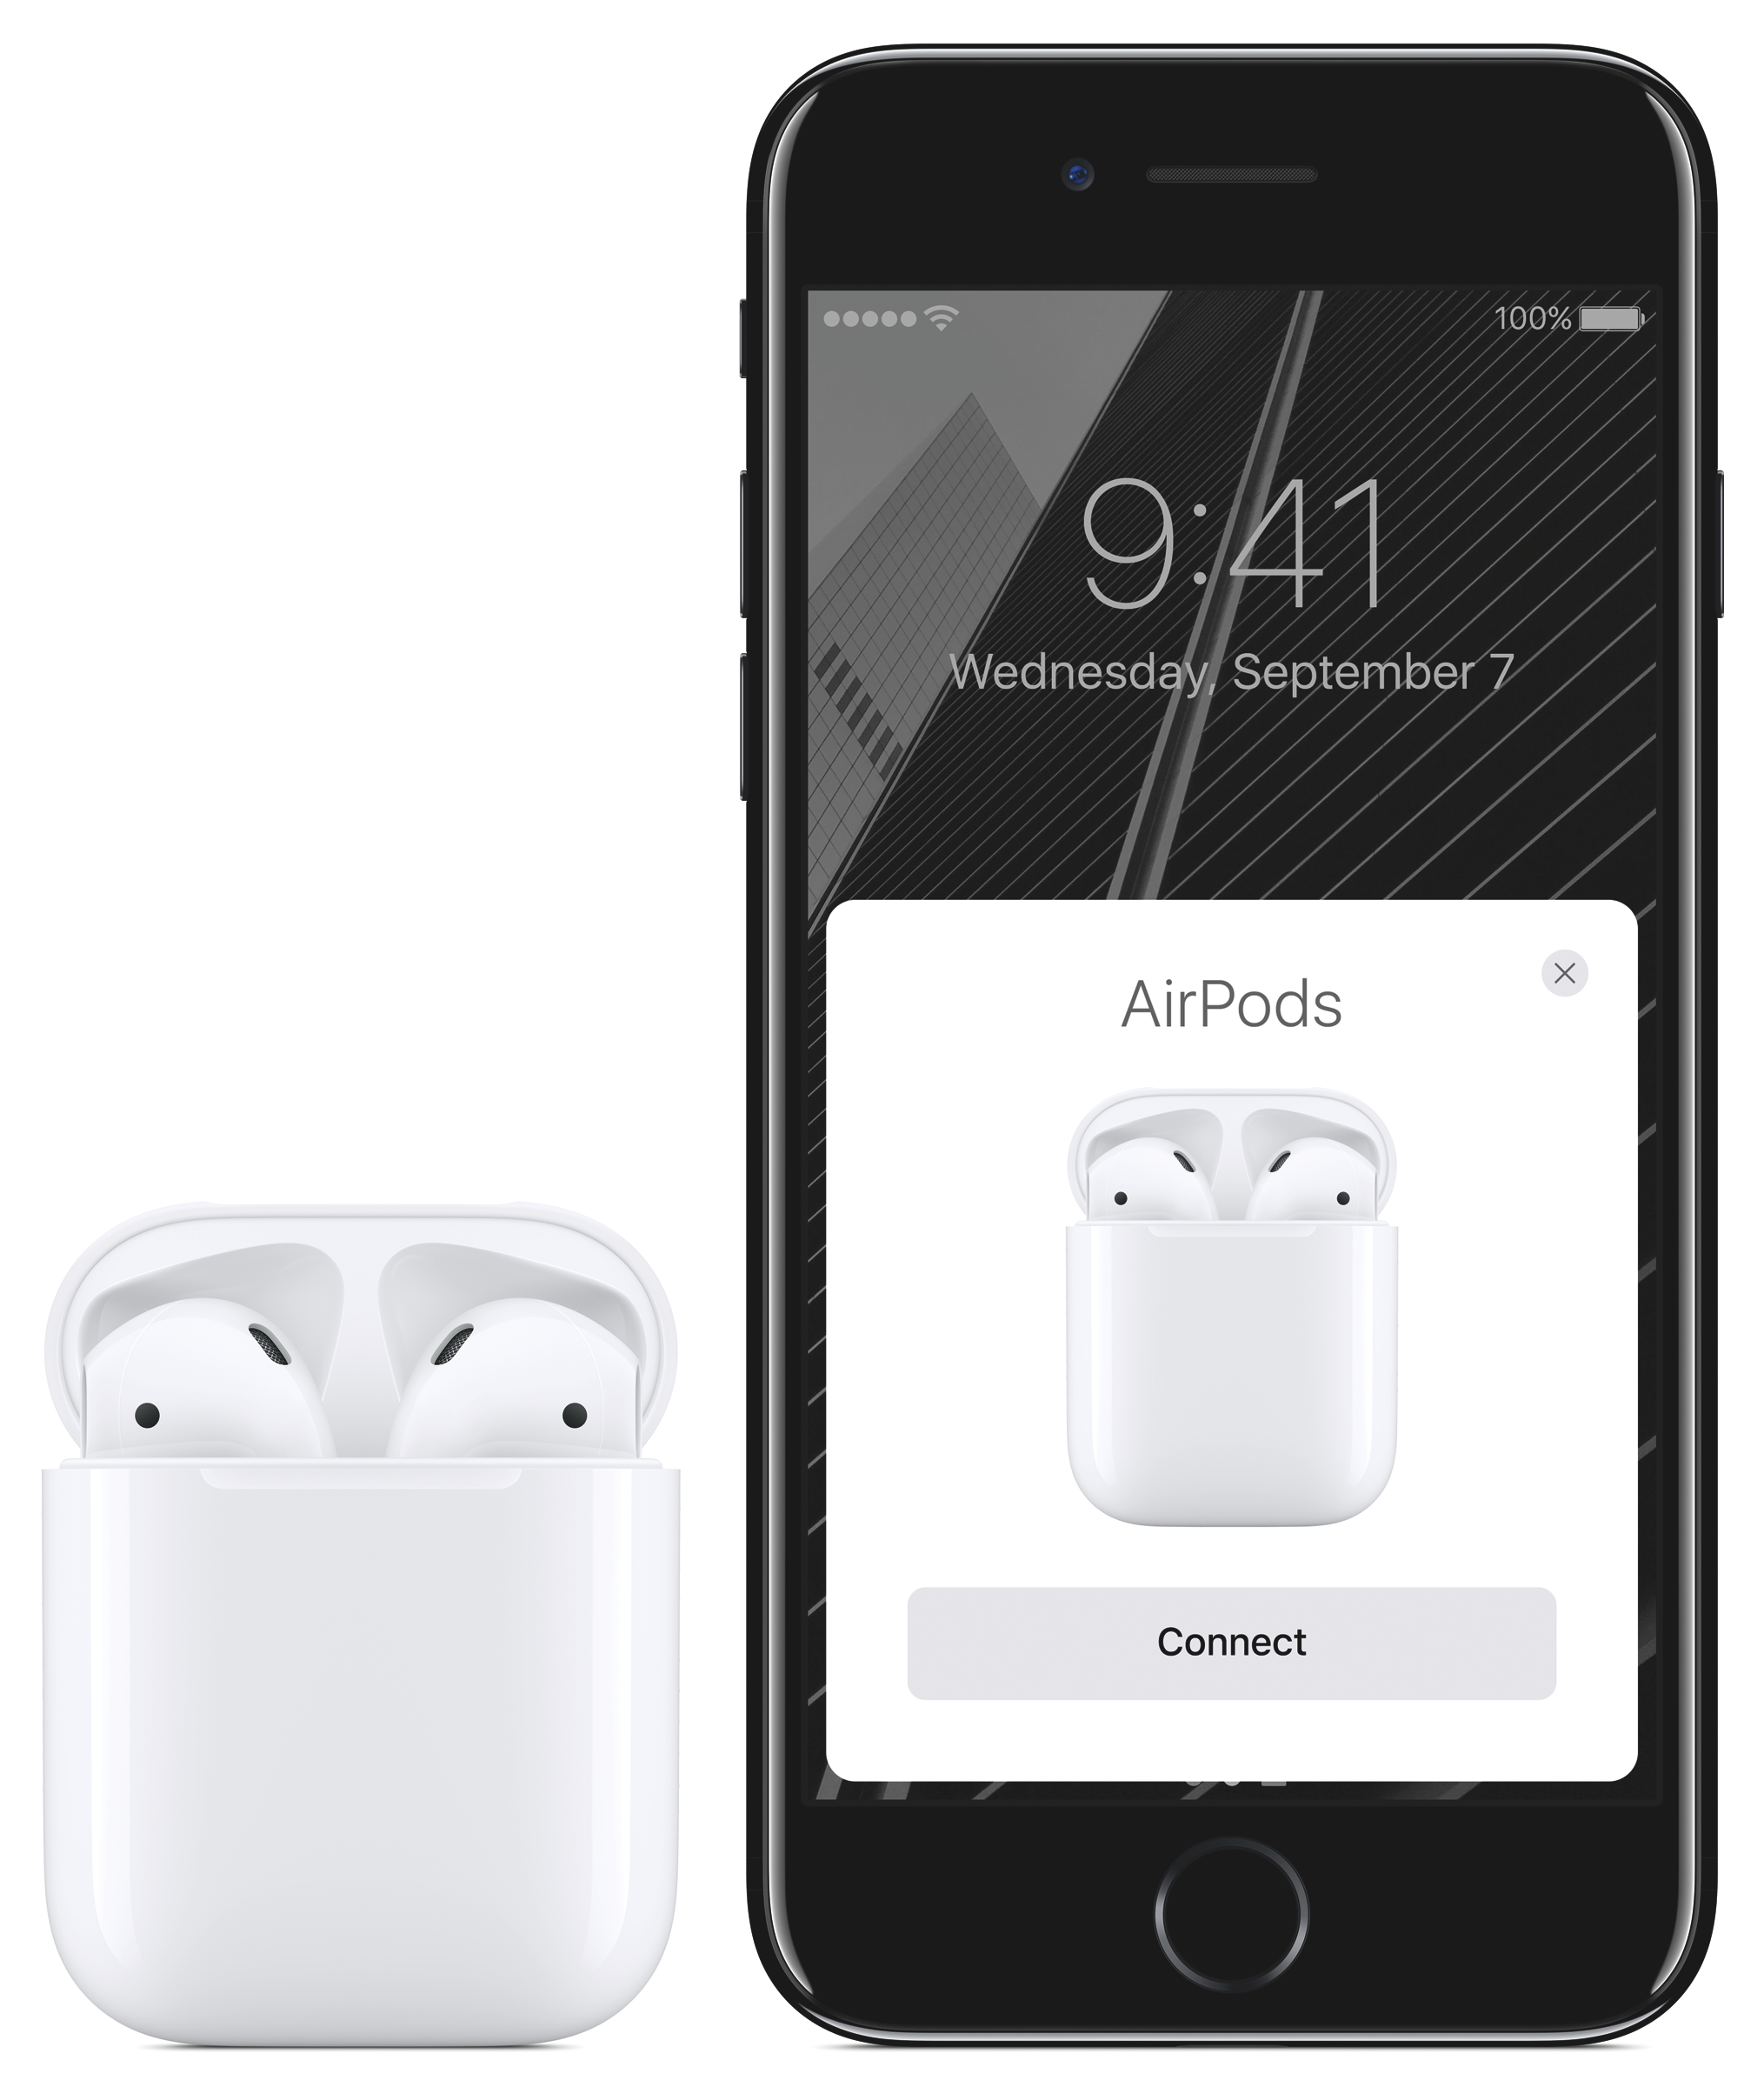 AirPods w:iPhone.png